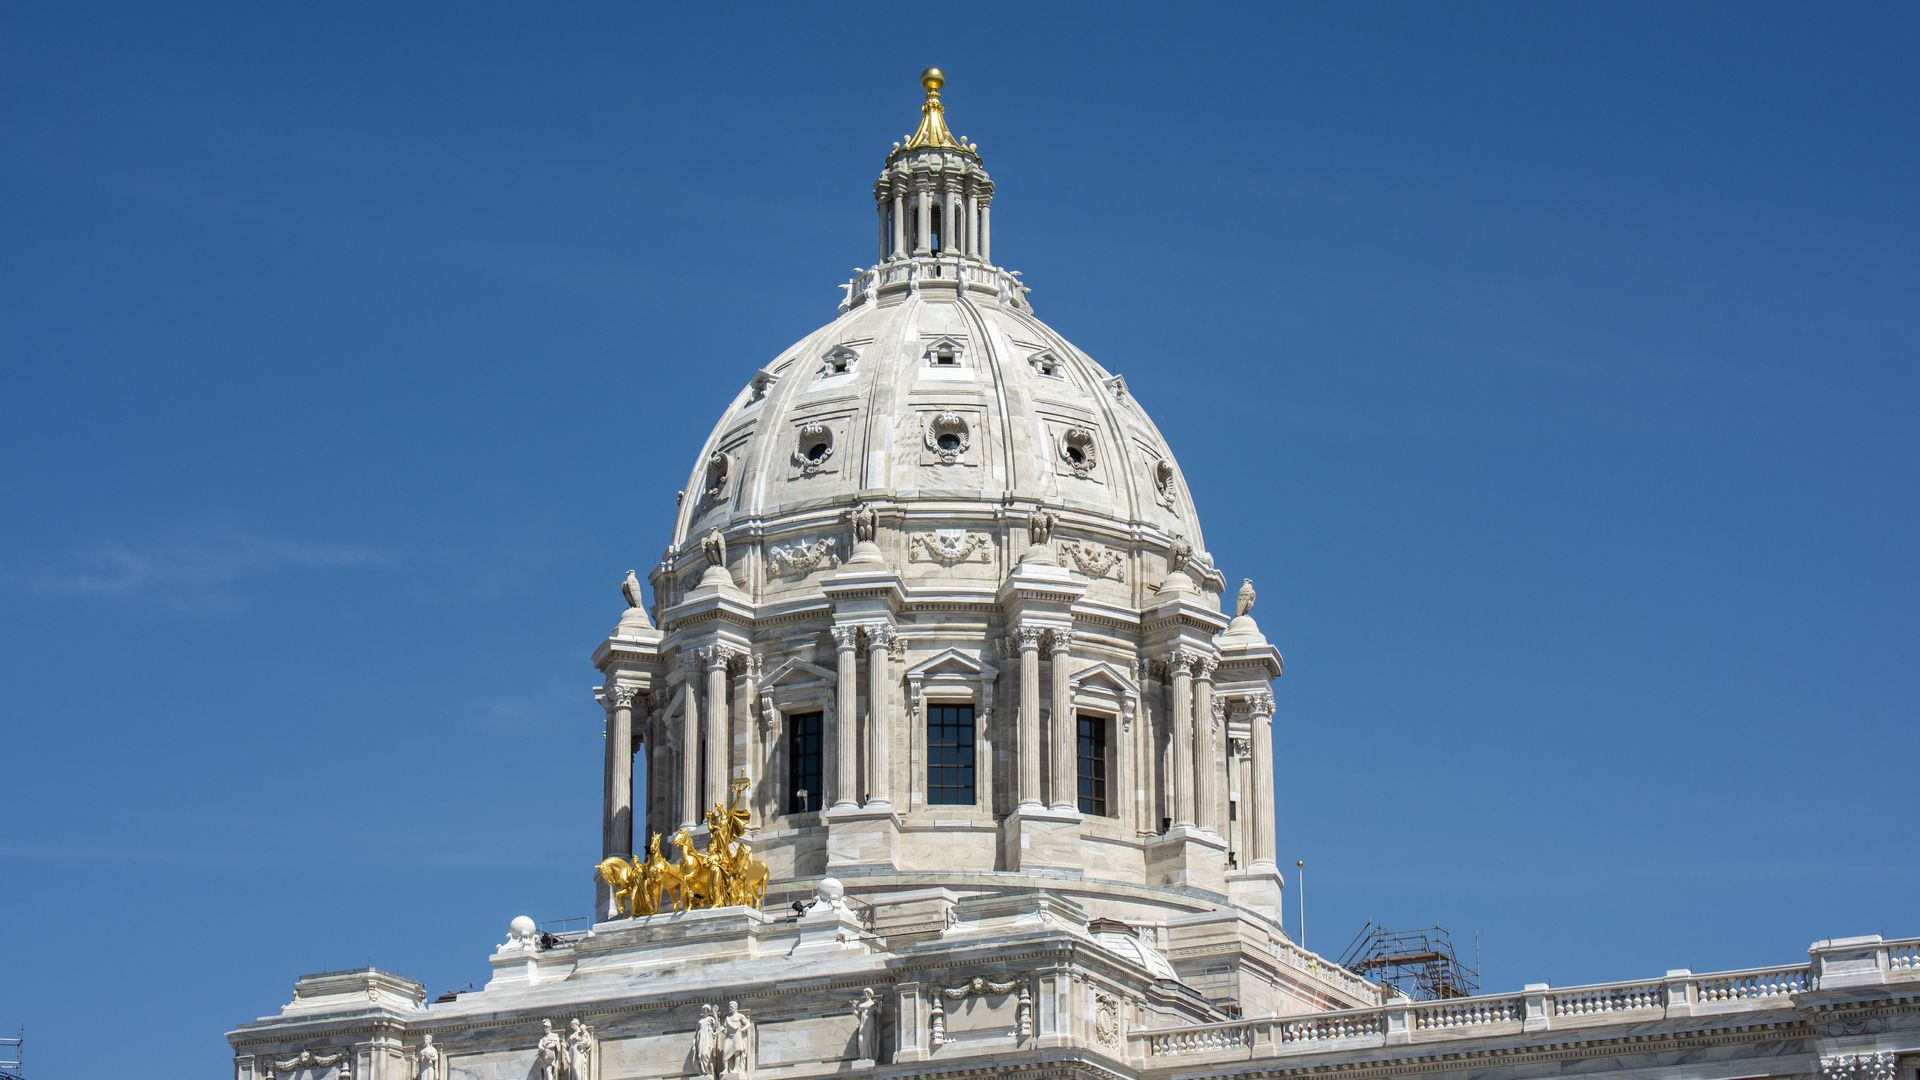 A dome atop the state capitol